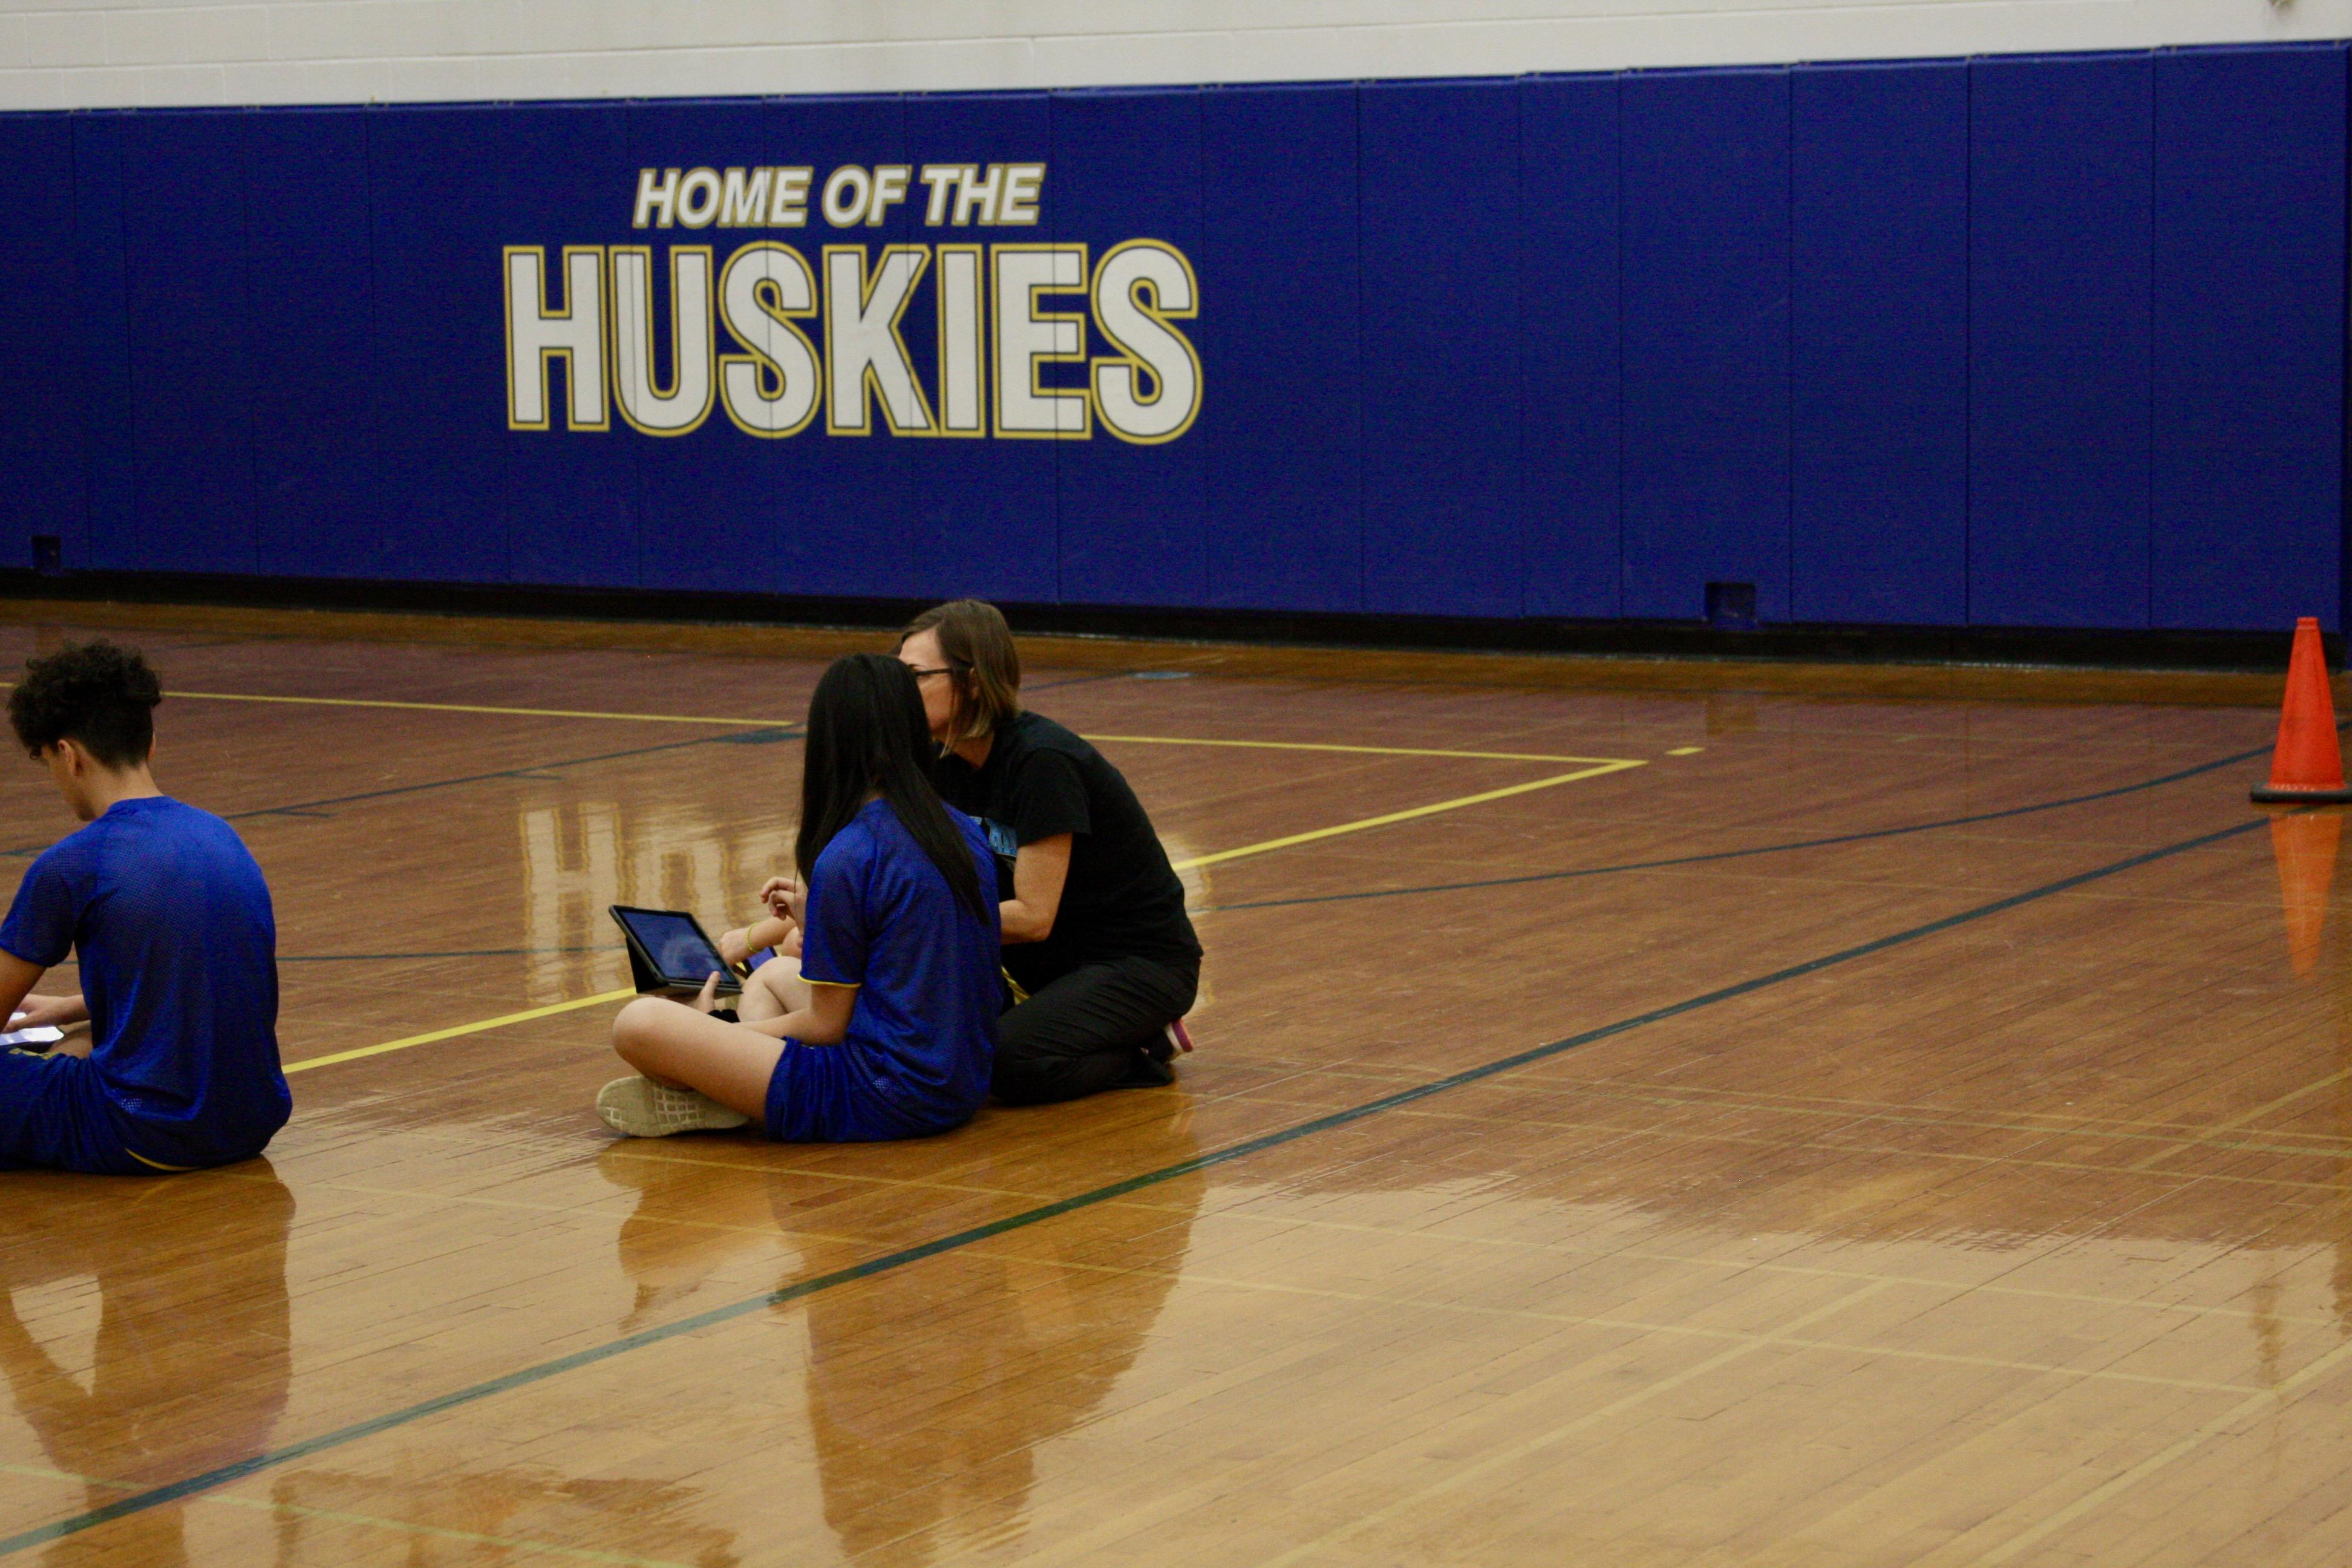 Science teacher working with student during PE class.